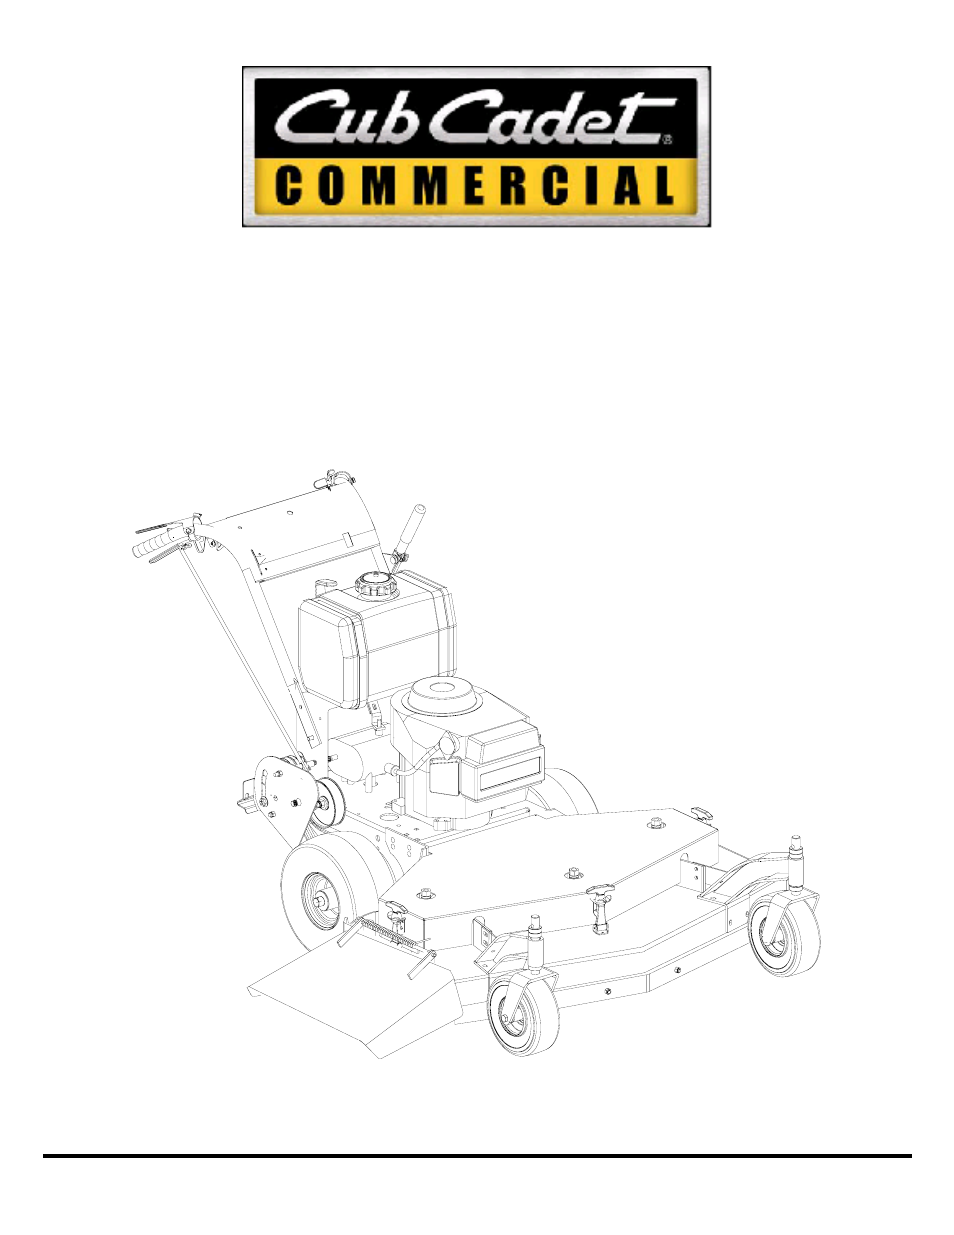 Cub Cadet G1548 Schematic Diagram Wiring 2135 User Manual 20 Pages Also For G1336 G1332 169 Tractor